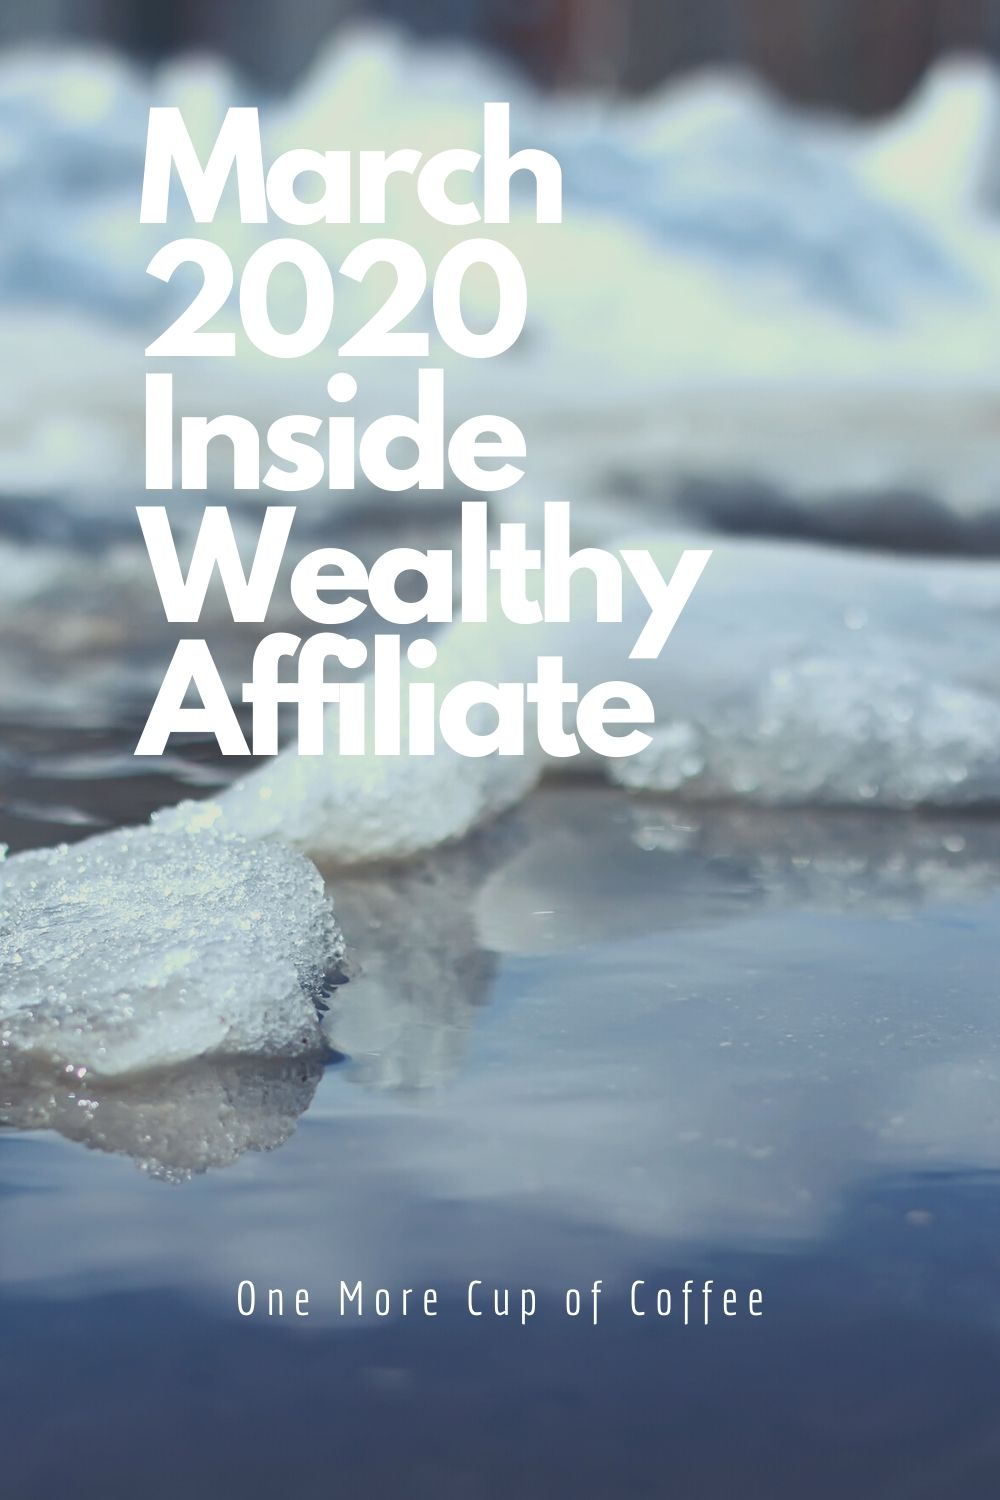 March 2020 wealthy affiliate